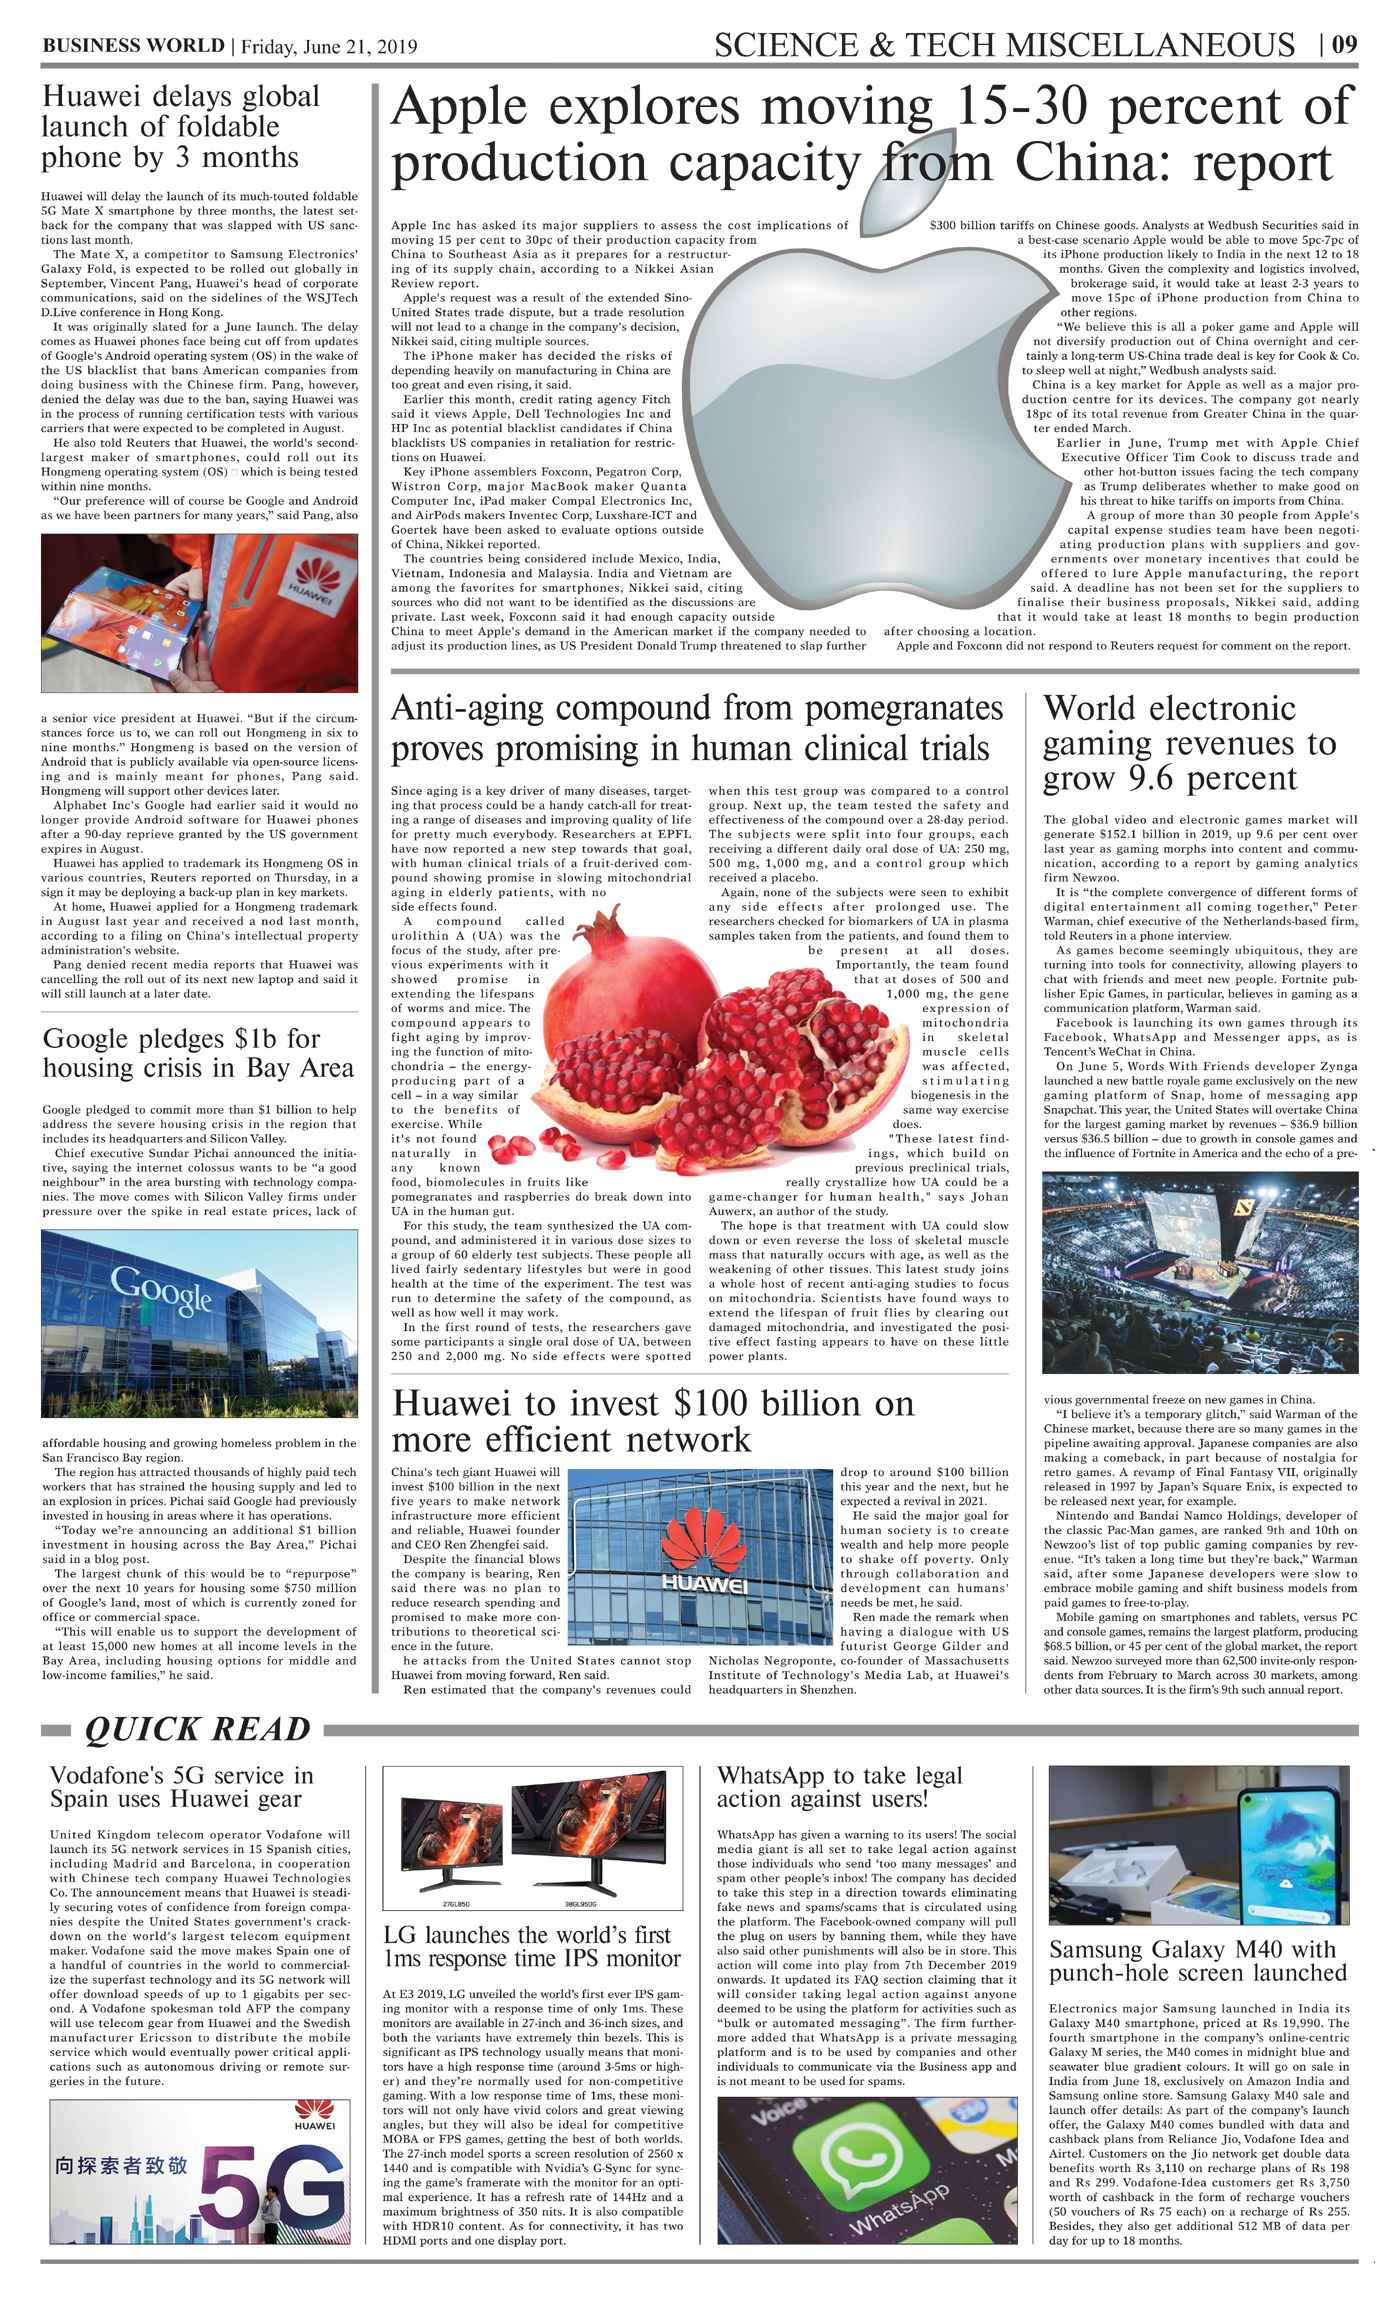 Daily Business World E-Paper 21st June 2019 - Daily Business